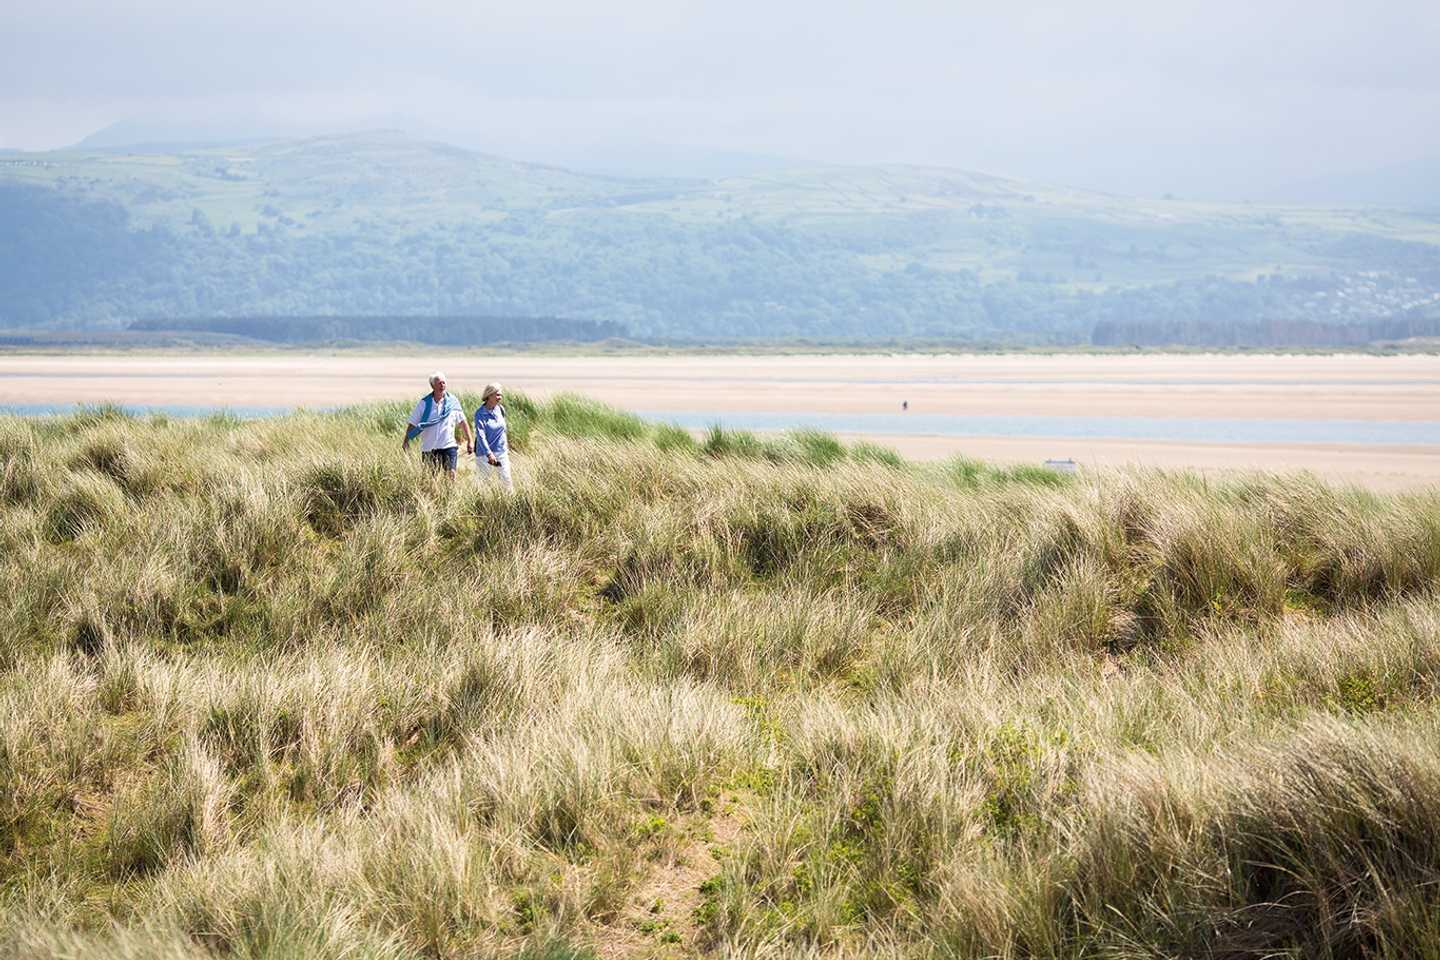 A view of a couple walking across the top of grassy sand dunes near our park, with sand, sea and mountains with mist around them in the background